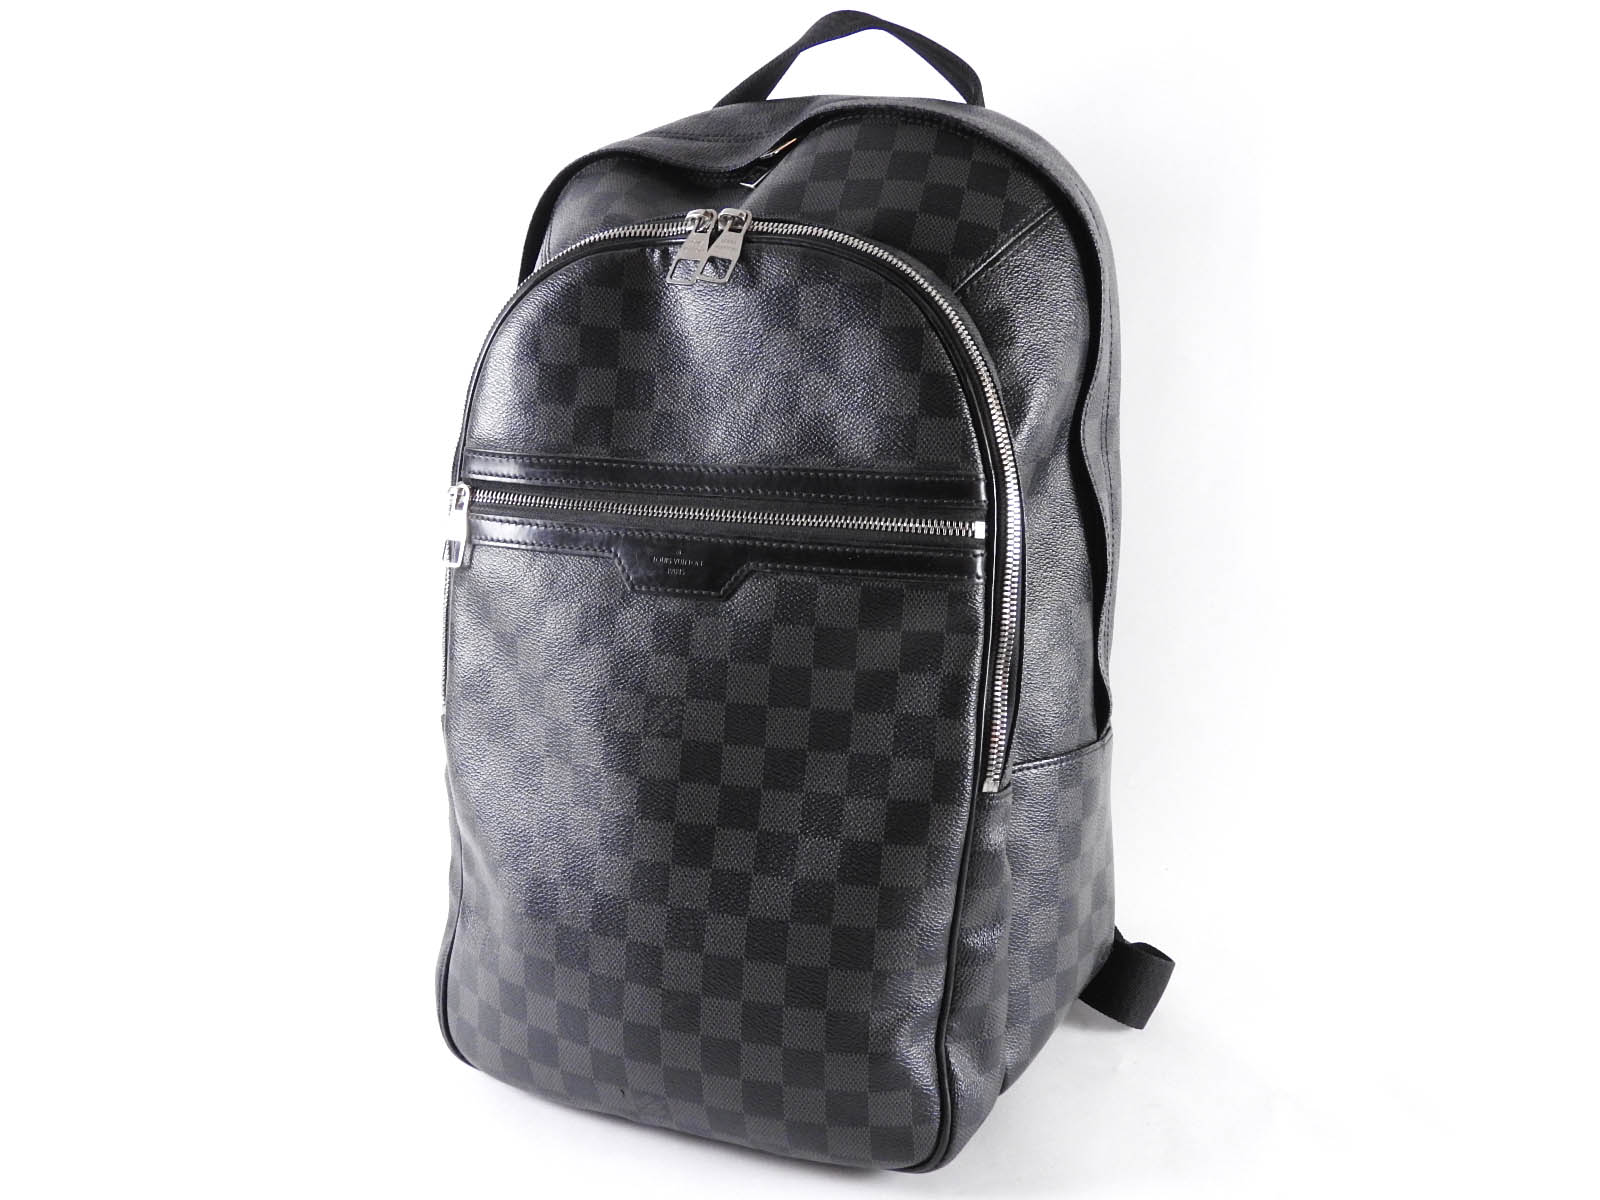 8401ee442517 Auth LOUIS VUITTON Damier Graphite Michael Backpack Bag N58024 A-5702